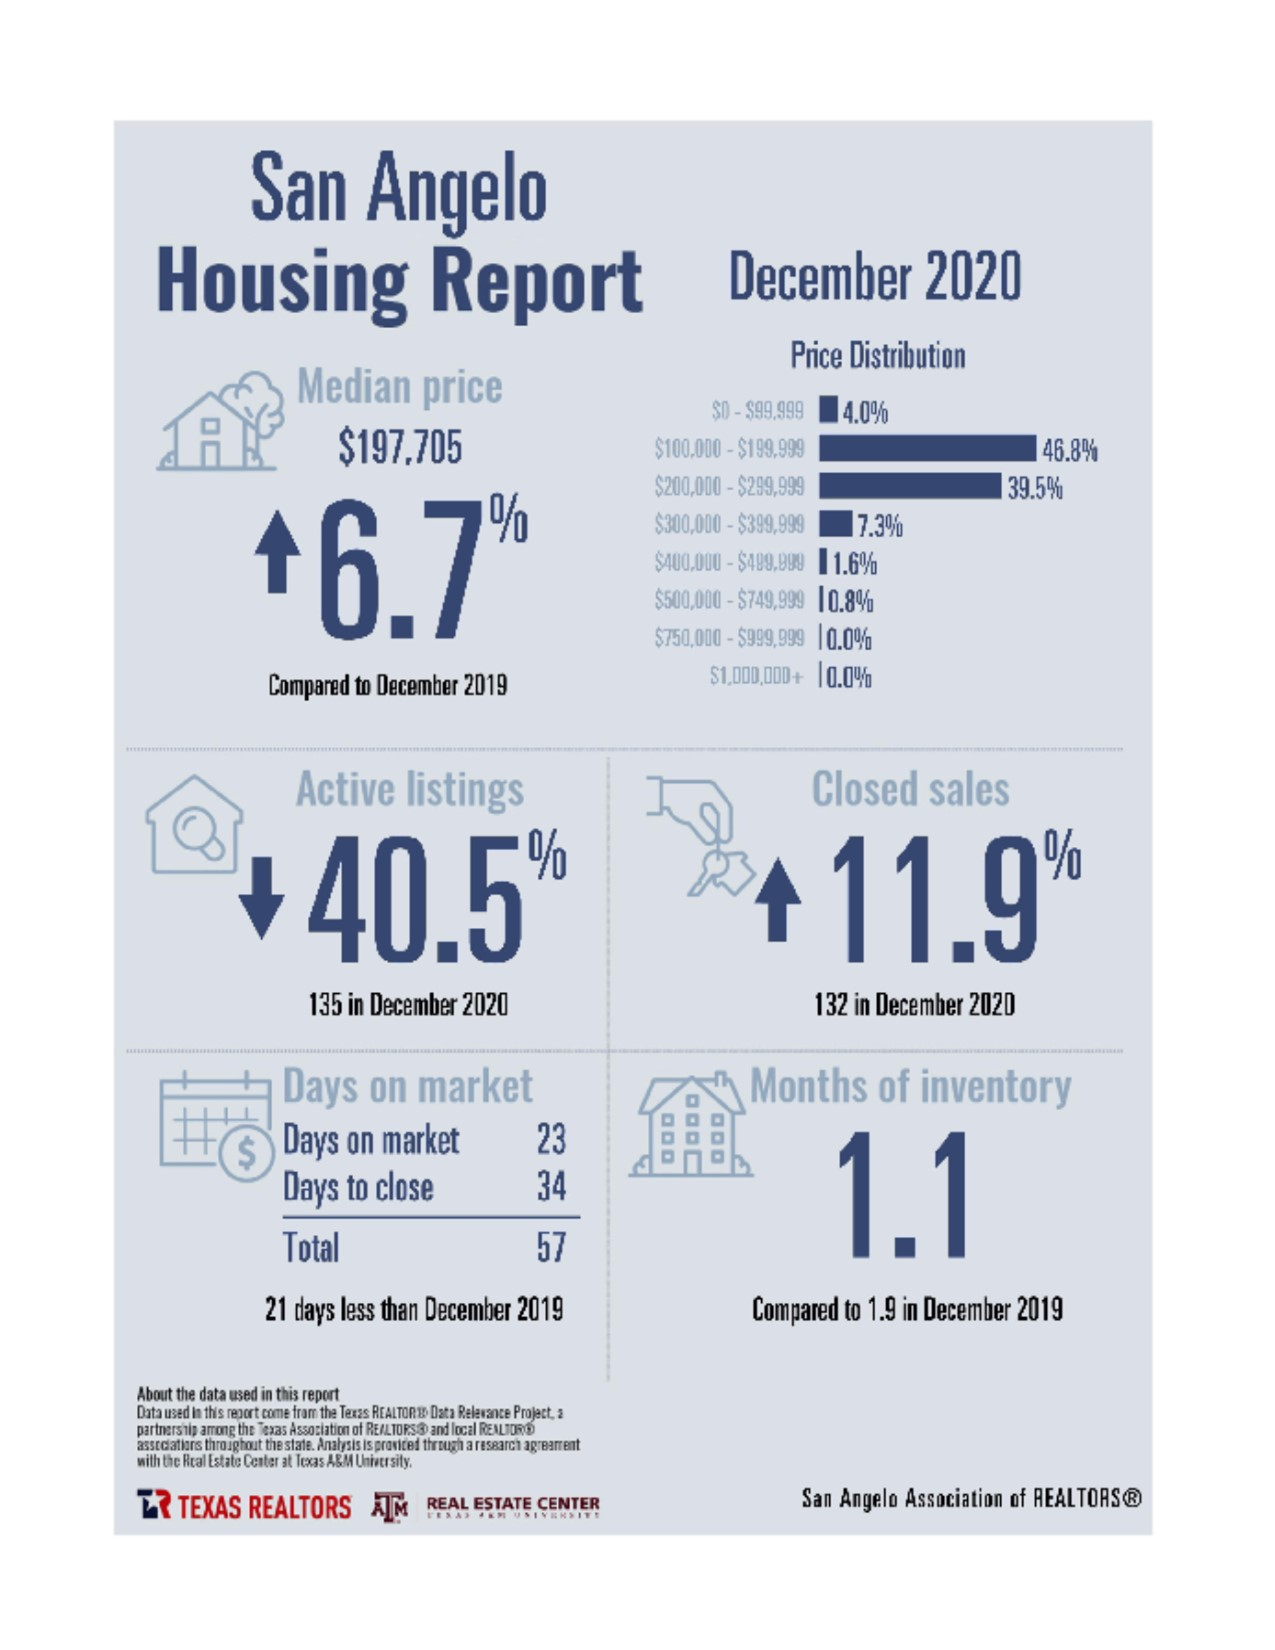 San Angelo Housing Report December 2020 Main Photo